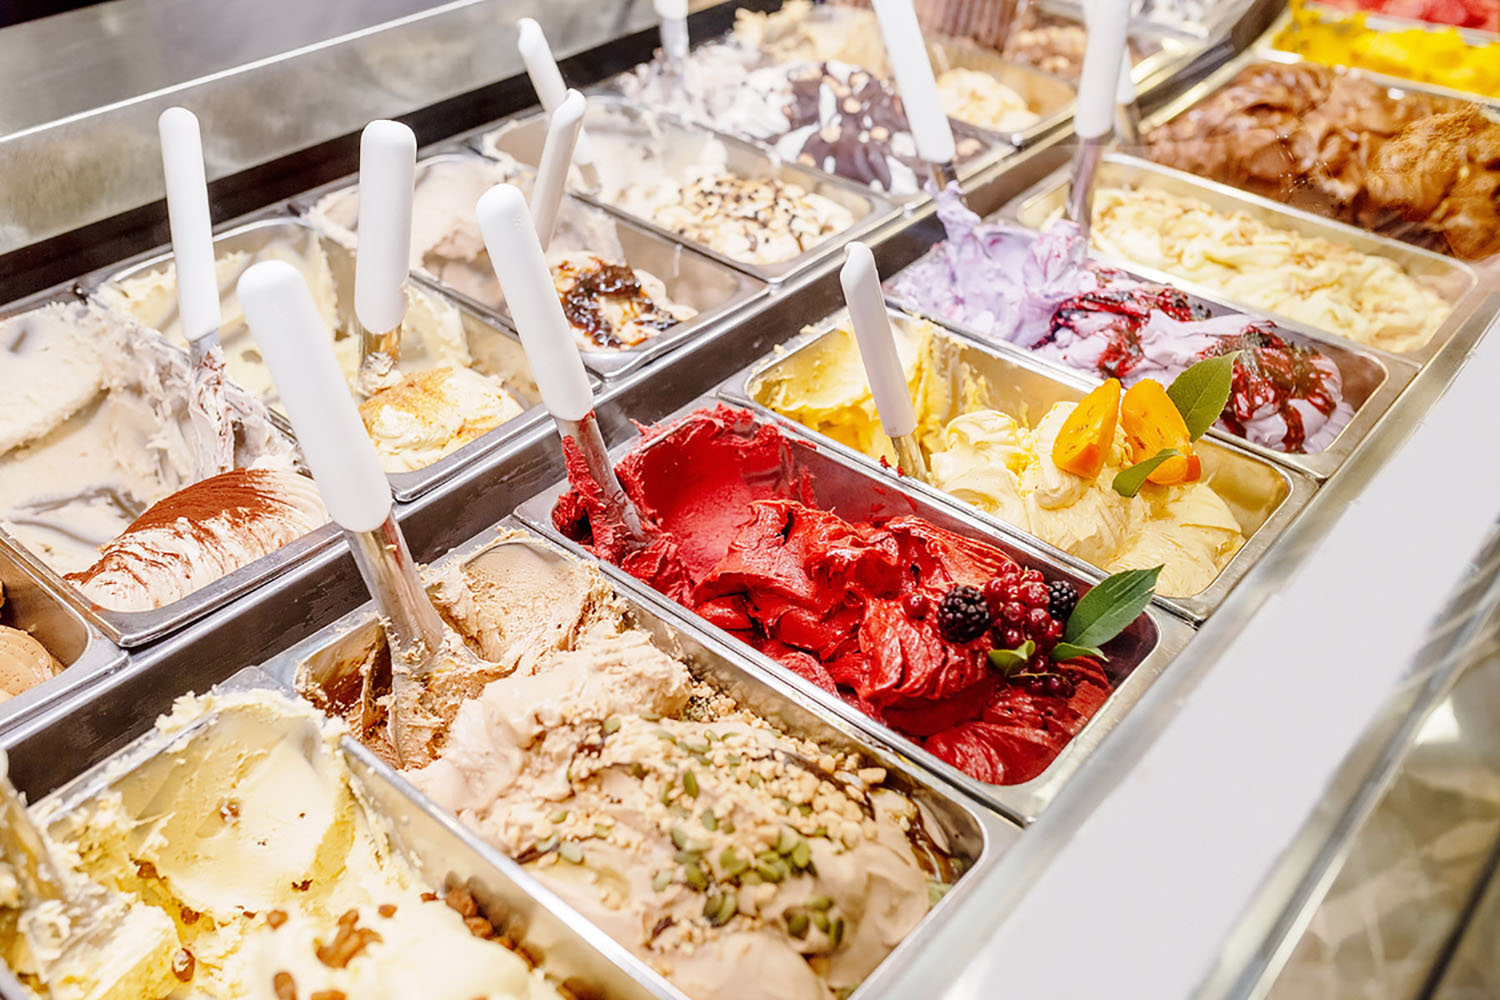 Different flavours of gelato in a parlour